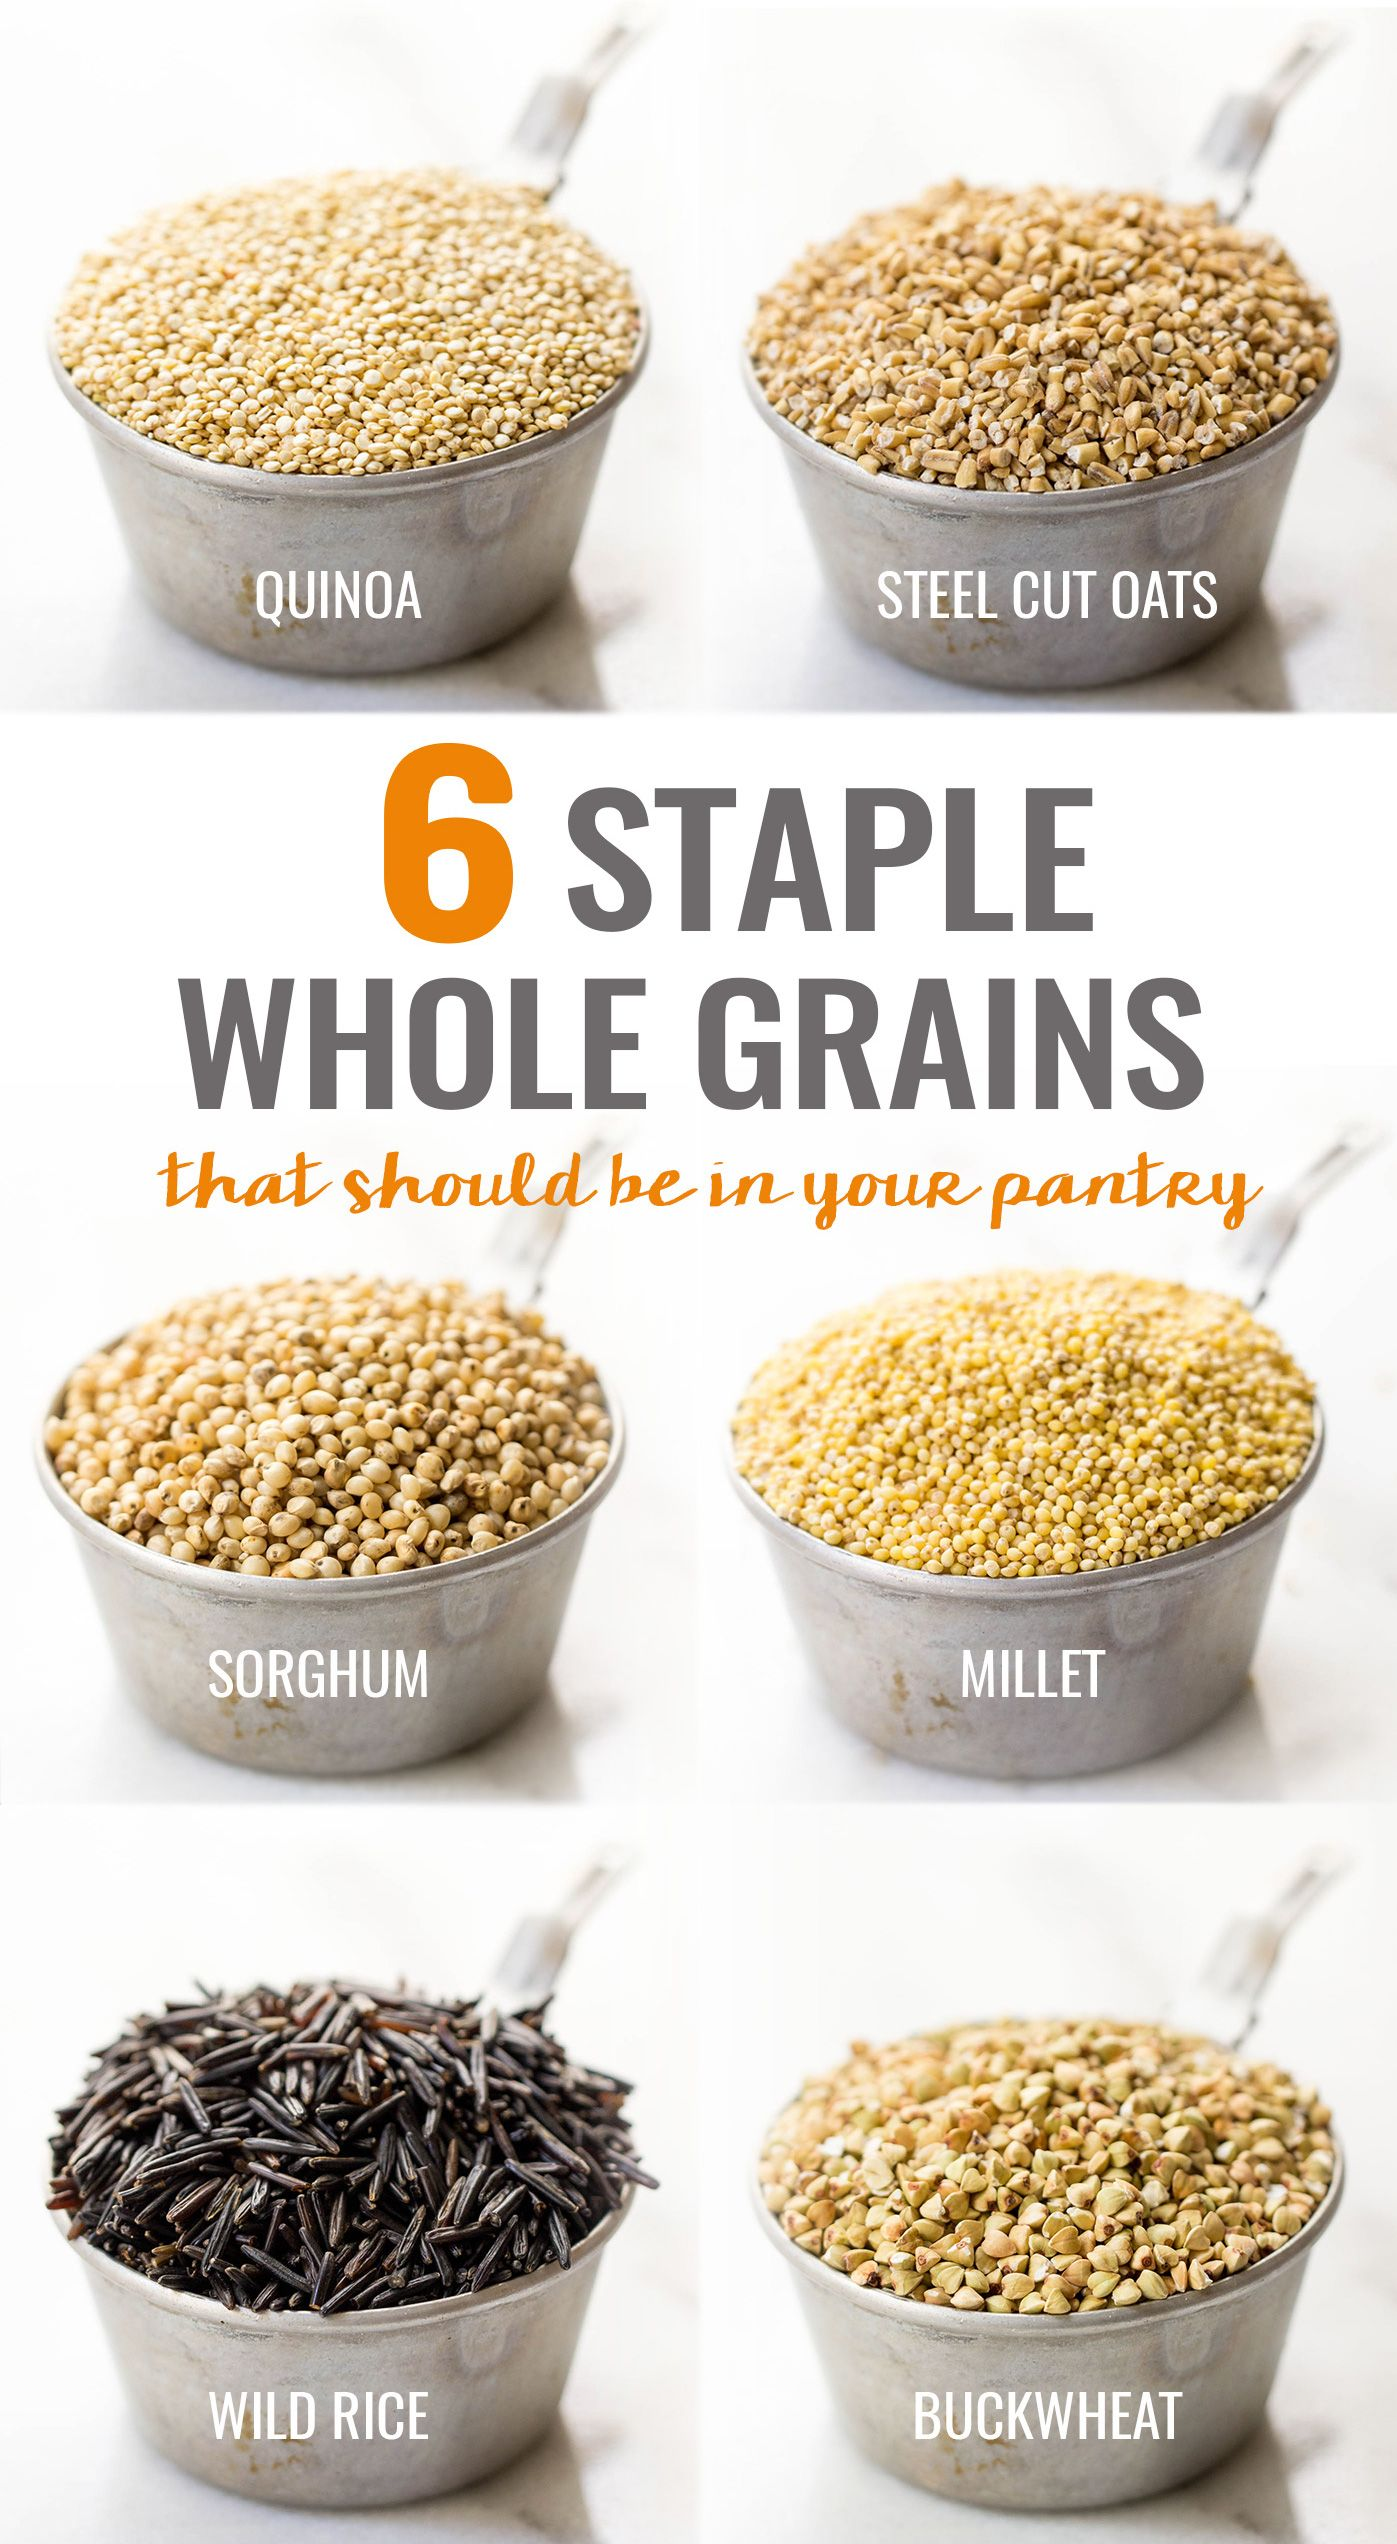 6 Staple Whole Grains to Keep in Your Pantry Grain foods